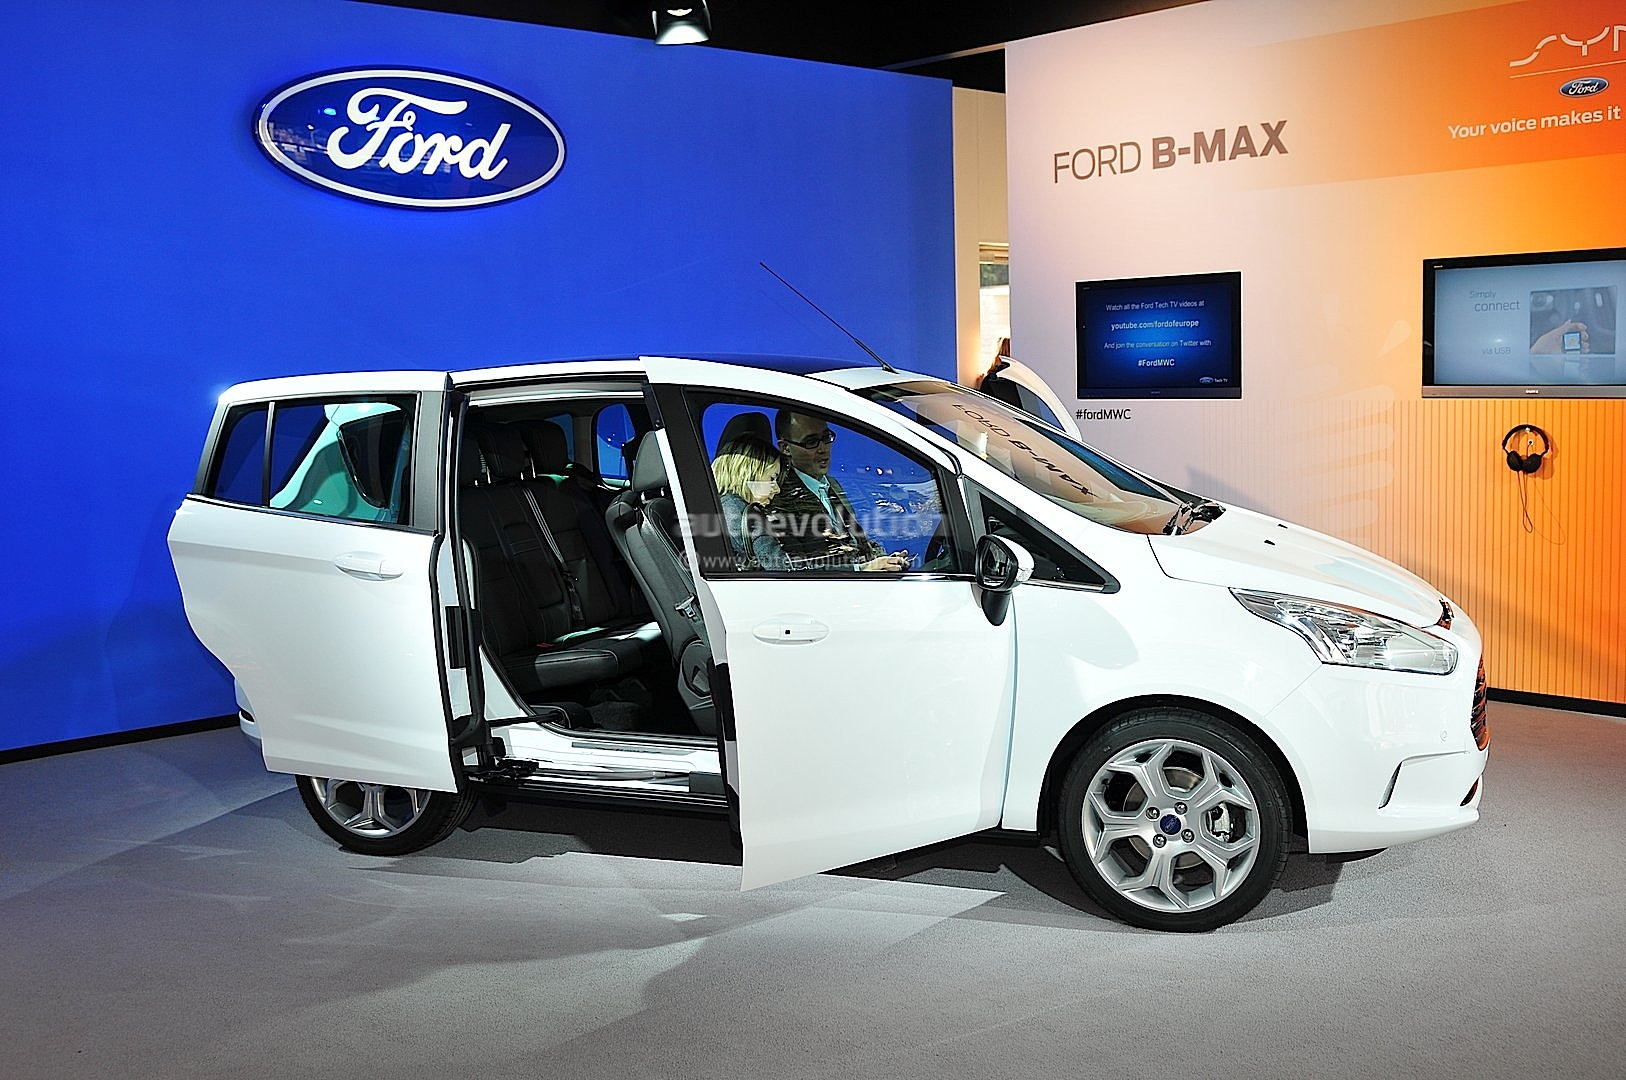 ford b max debuts at 2012 mobile world congress live photos autoevolution. Black Bedroom Furniture Sets. Home Design Ideas